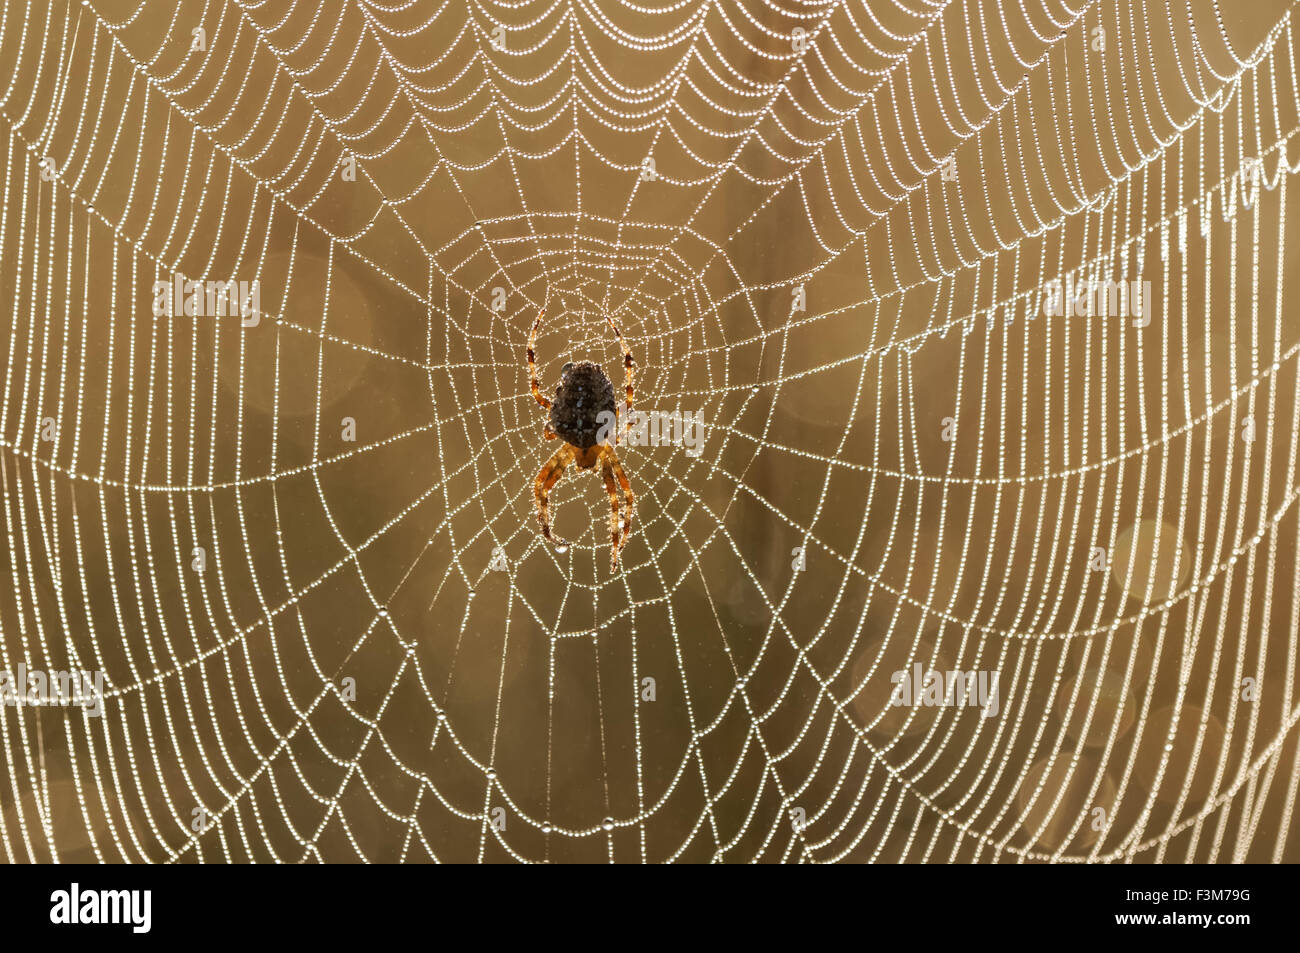 Spider on the web with droplets of dew - Stock Image